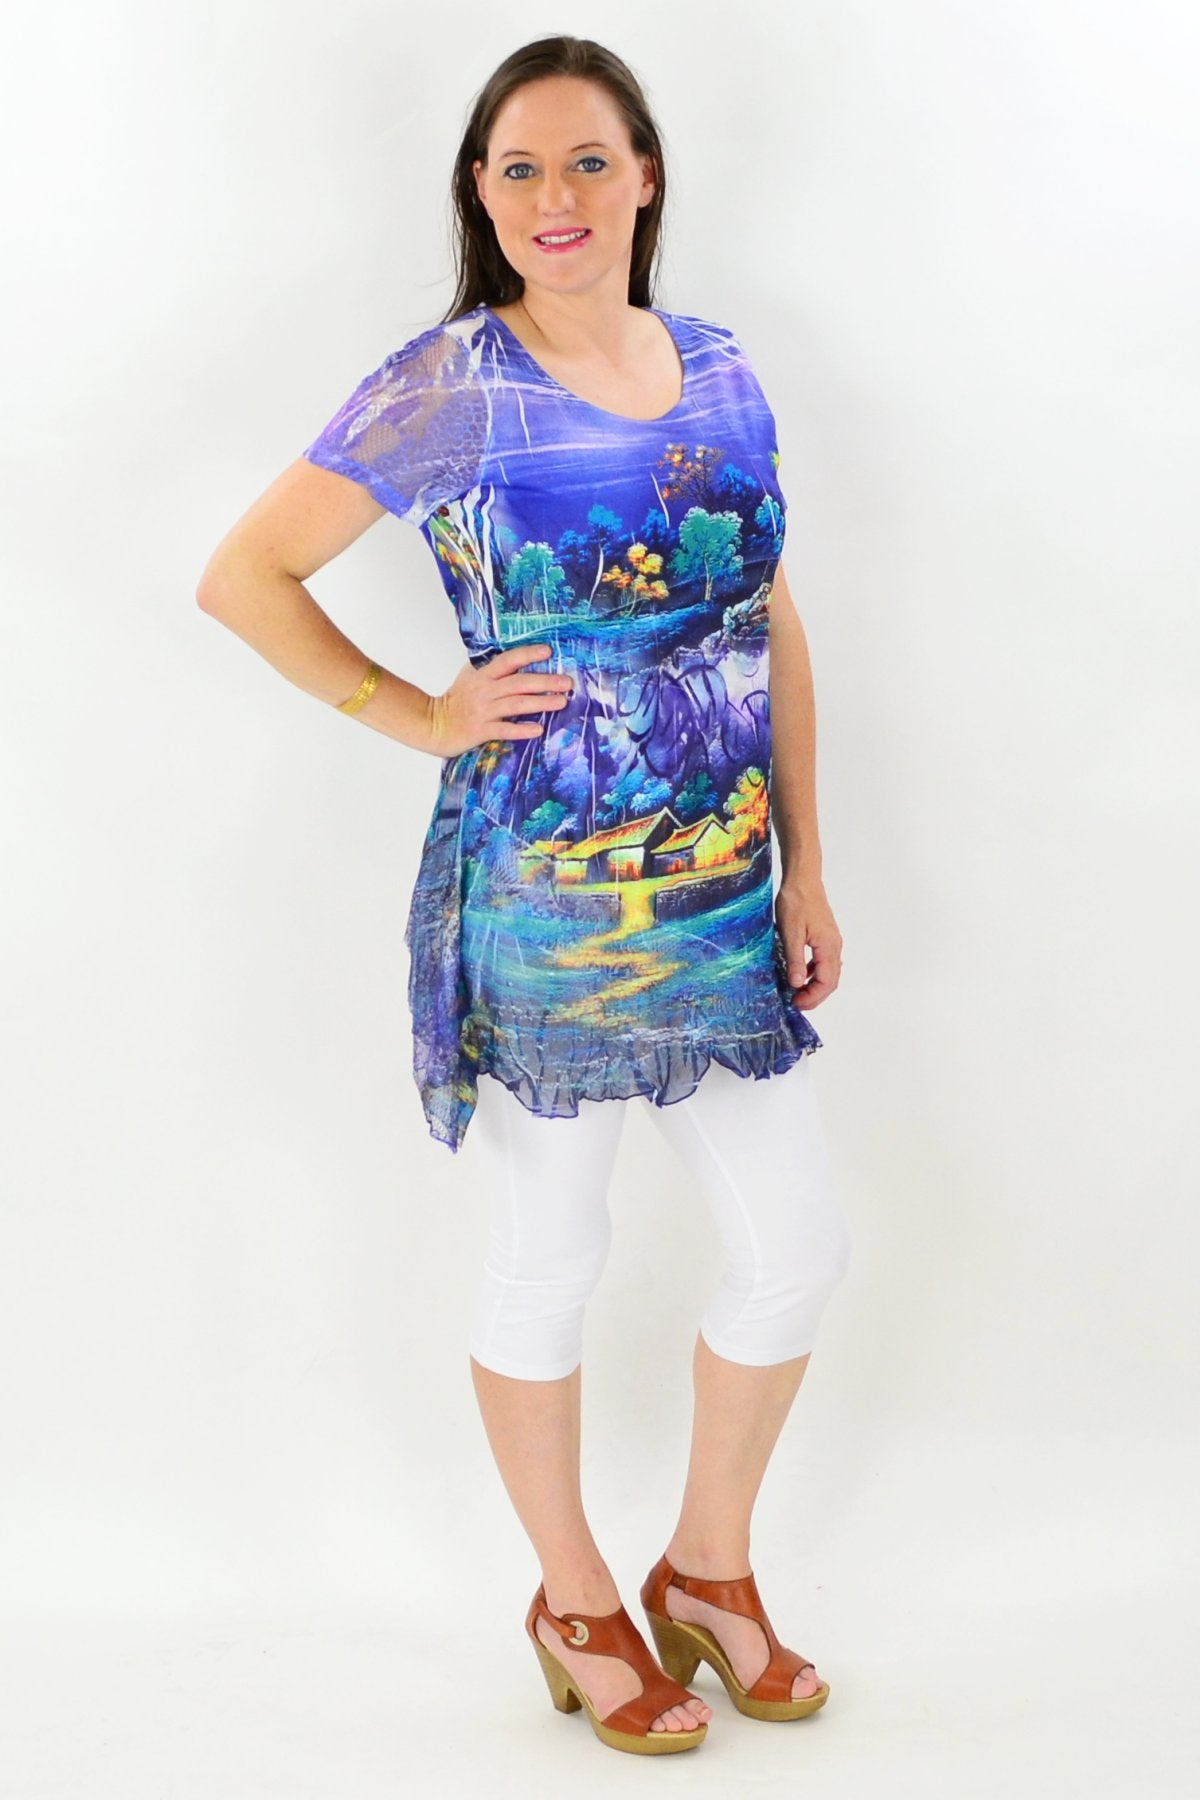 Moonlight River Tunic Top | I Love Tunics | Tunic Tops | Tunic | Tunic Dresses  | womens clothing online